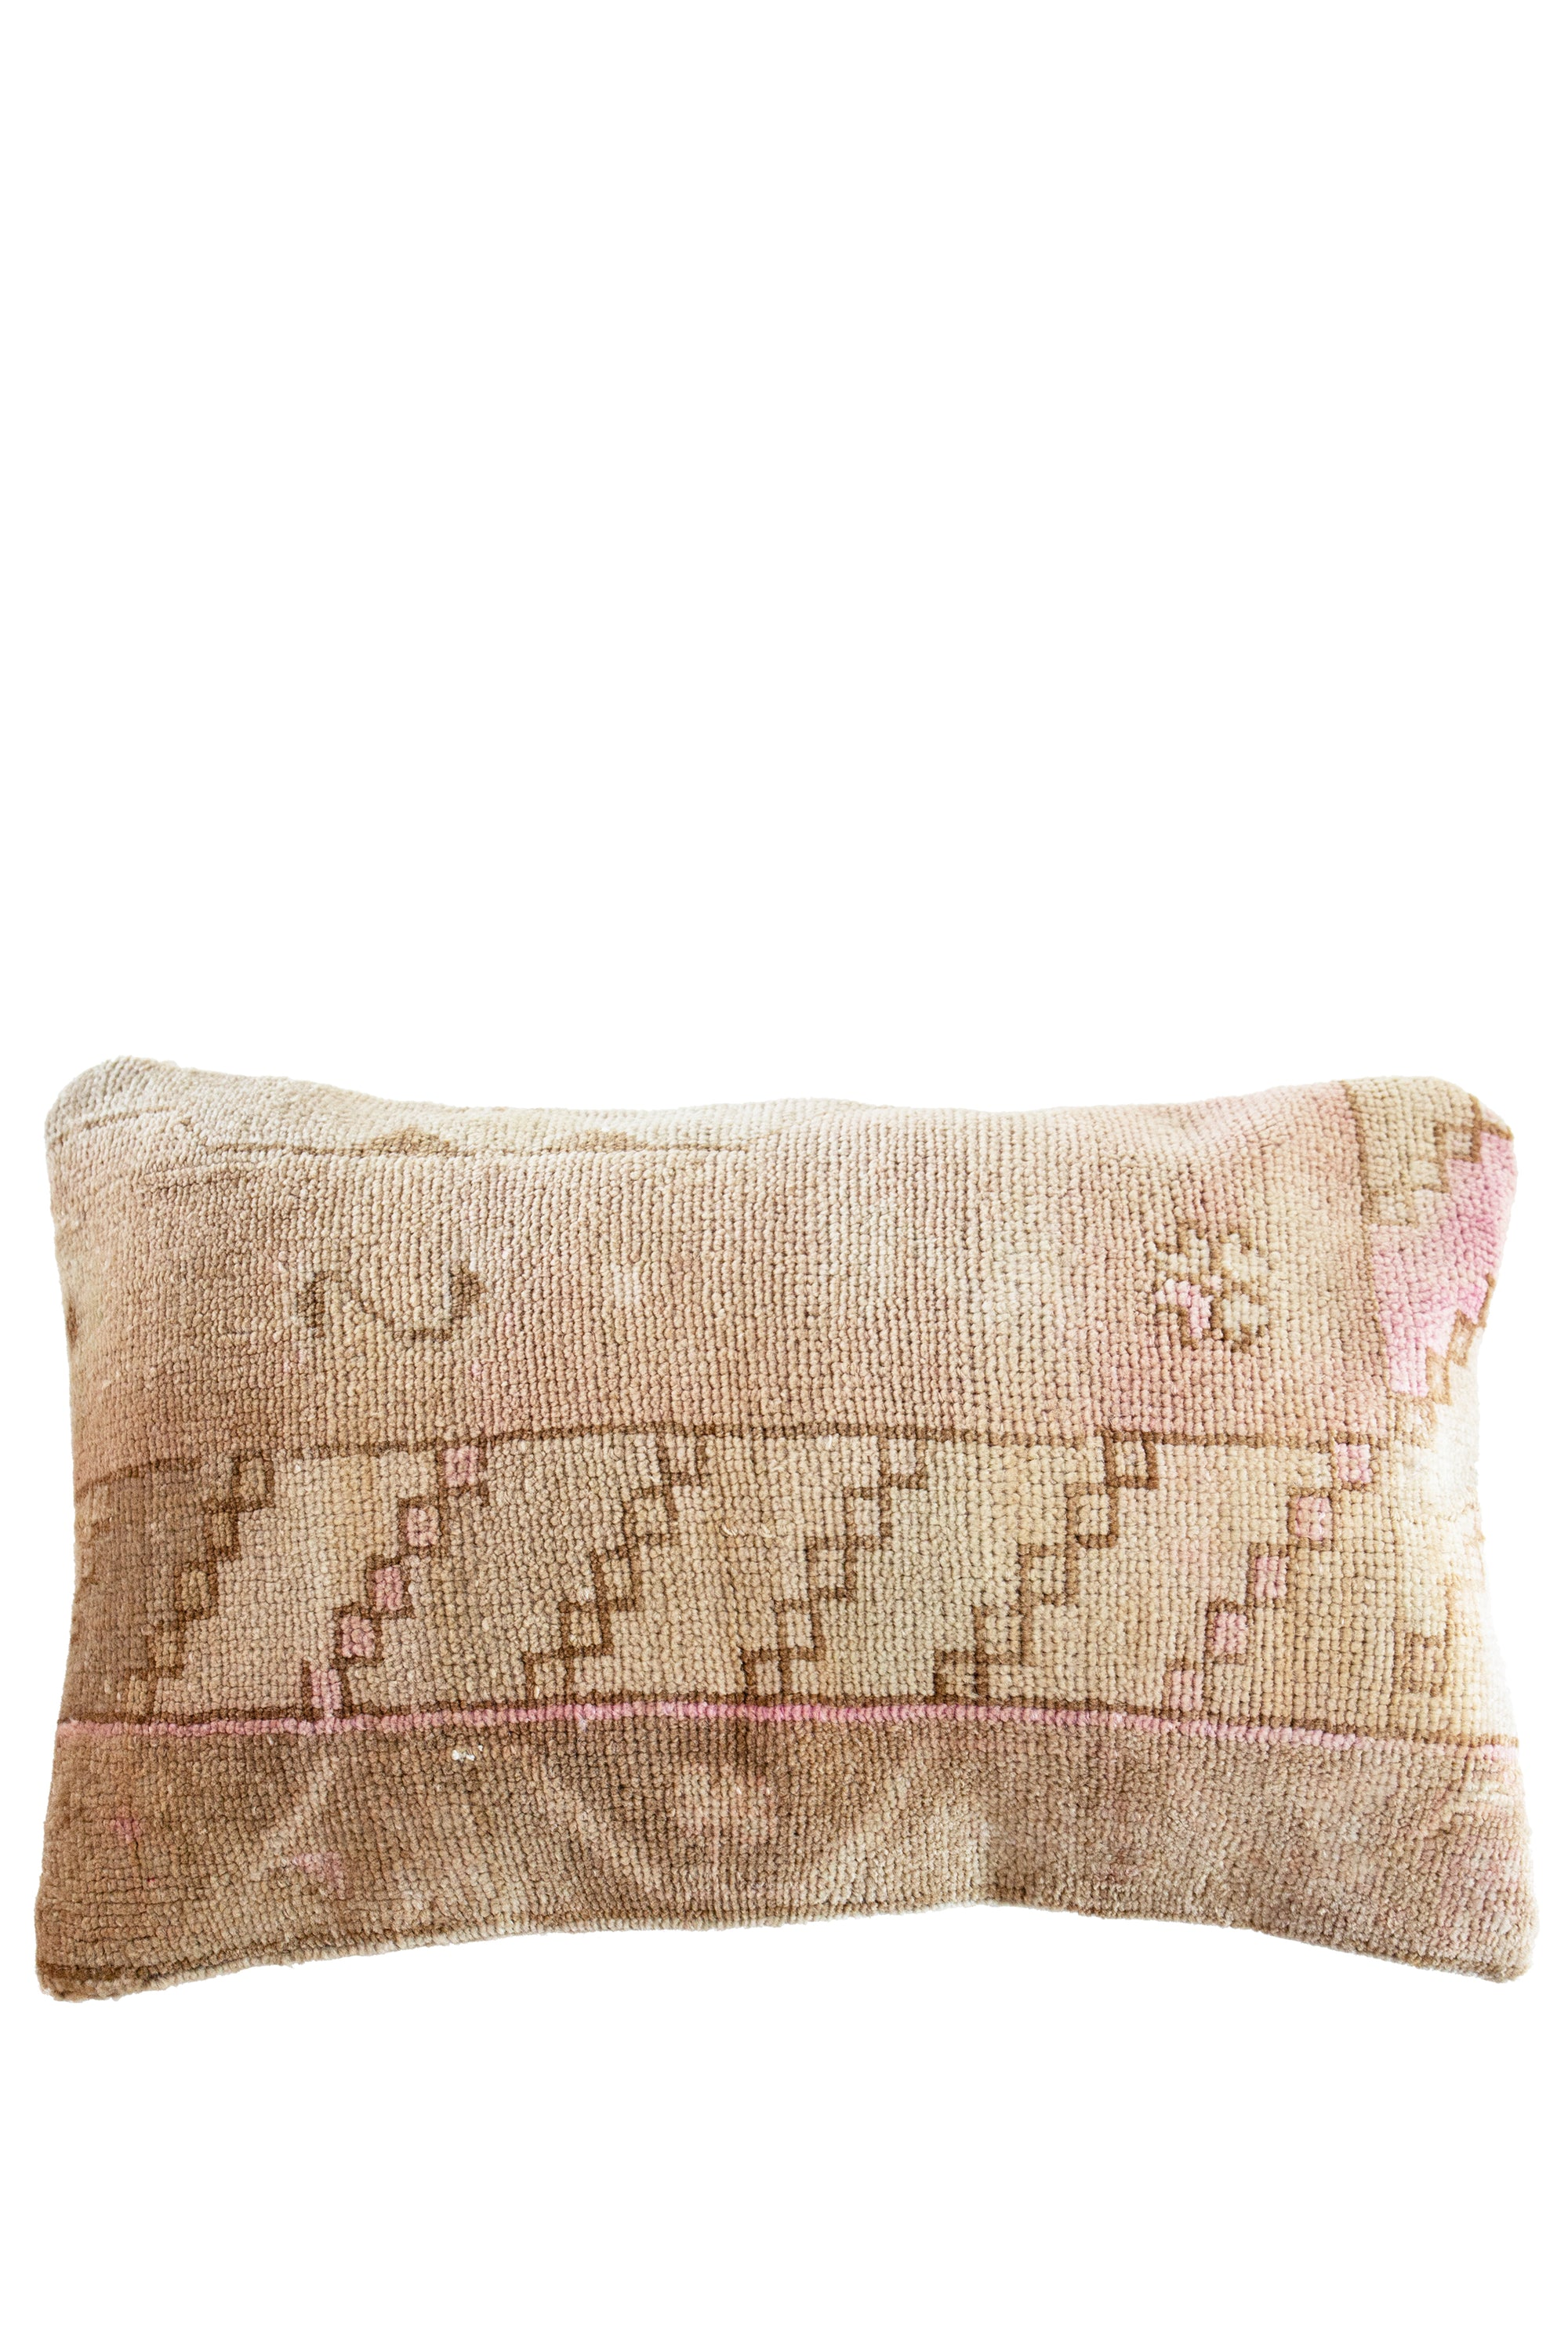 Jaime Turkish Kilim Cushion